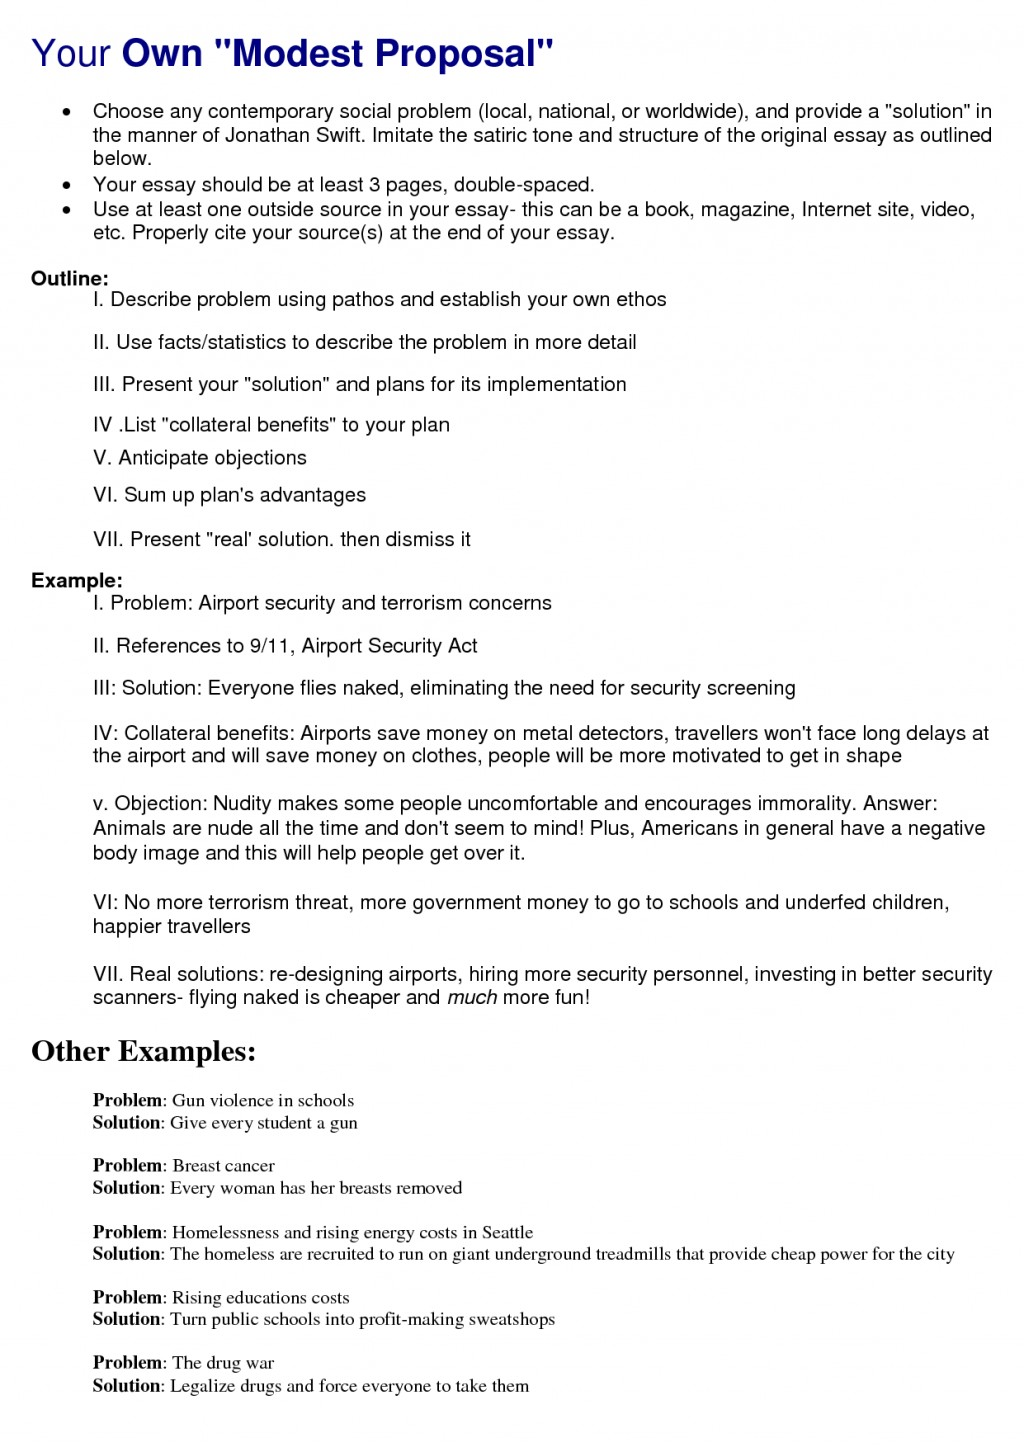 011 Essay Topics For Year Archaicawful 9 Questions Grade Olds Igcse Large